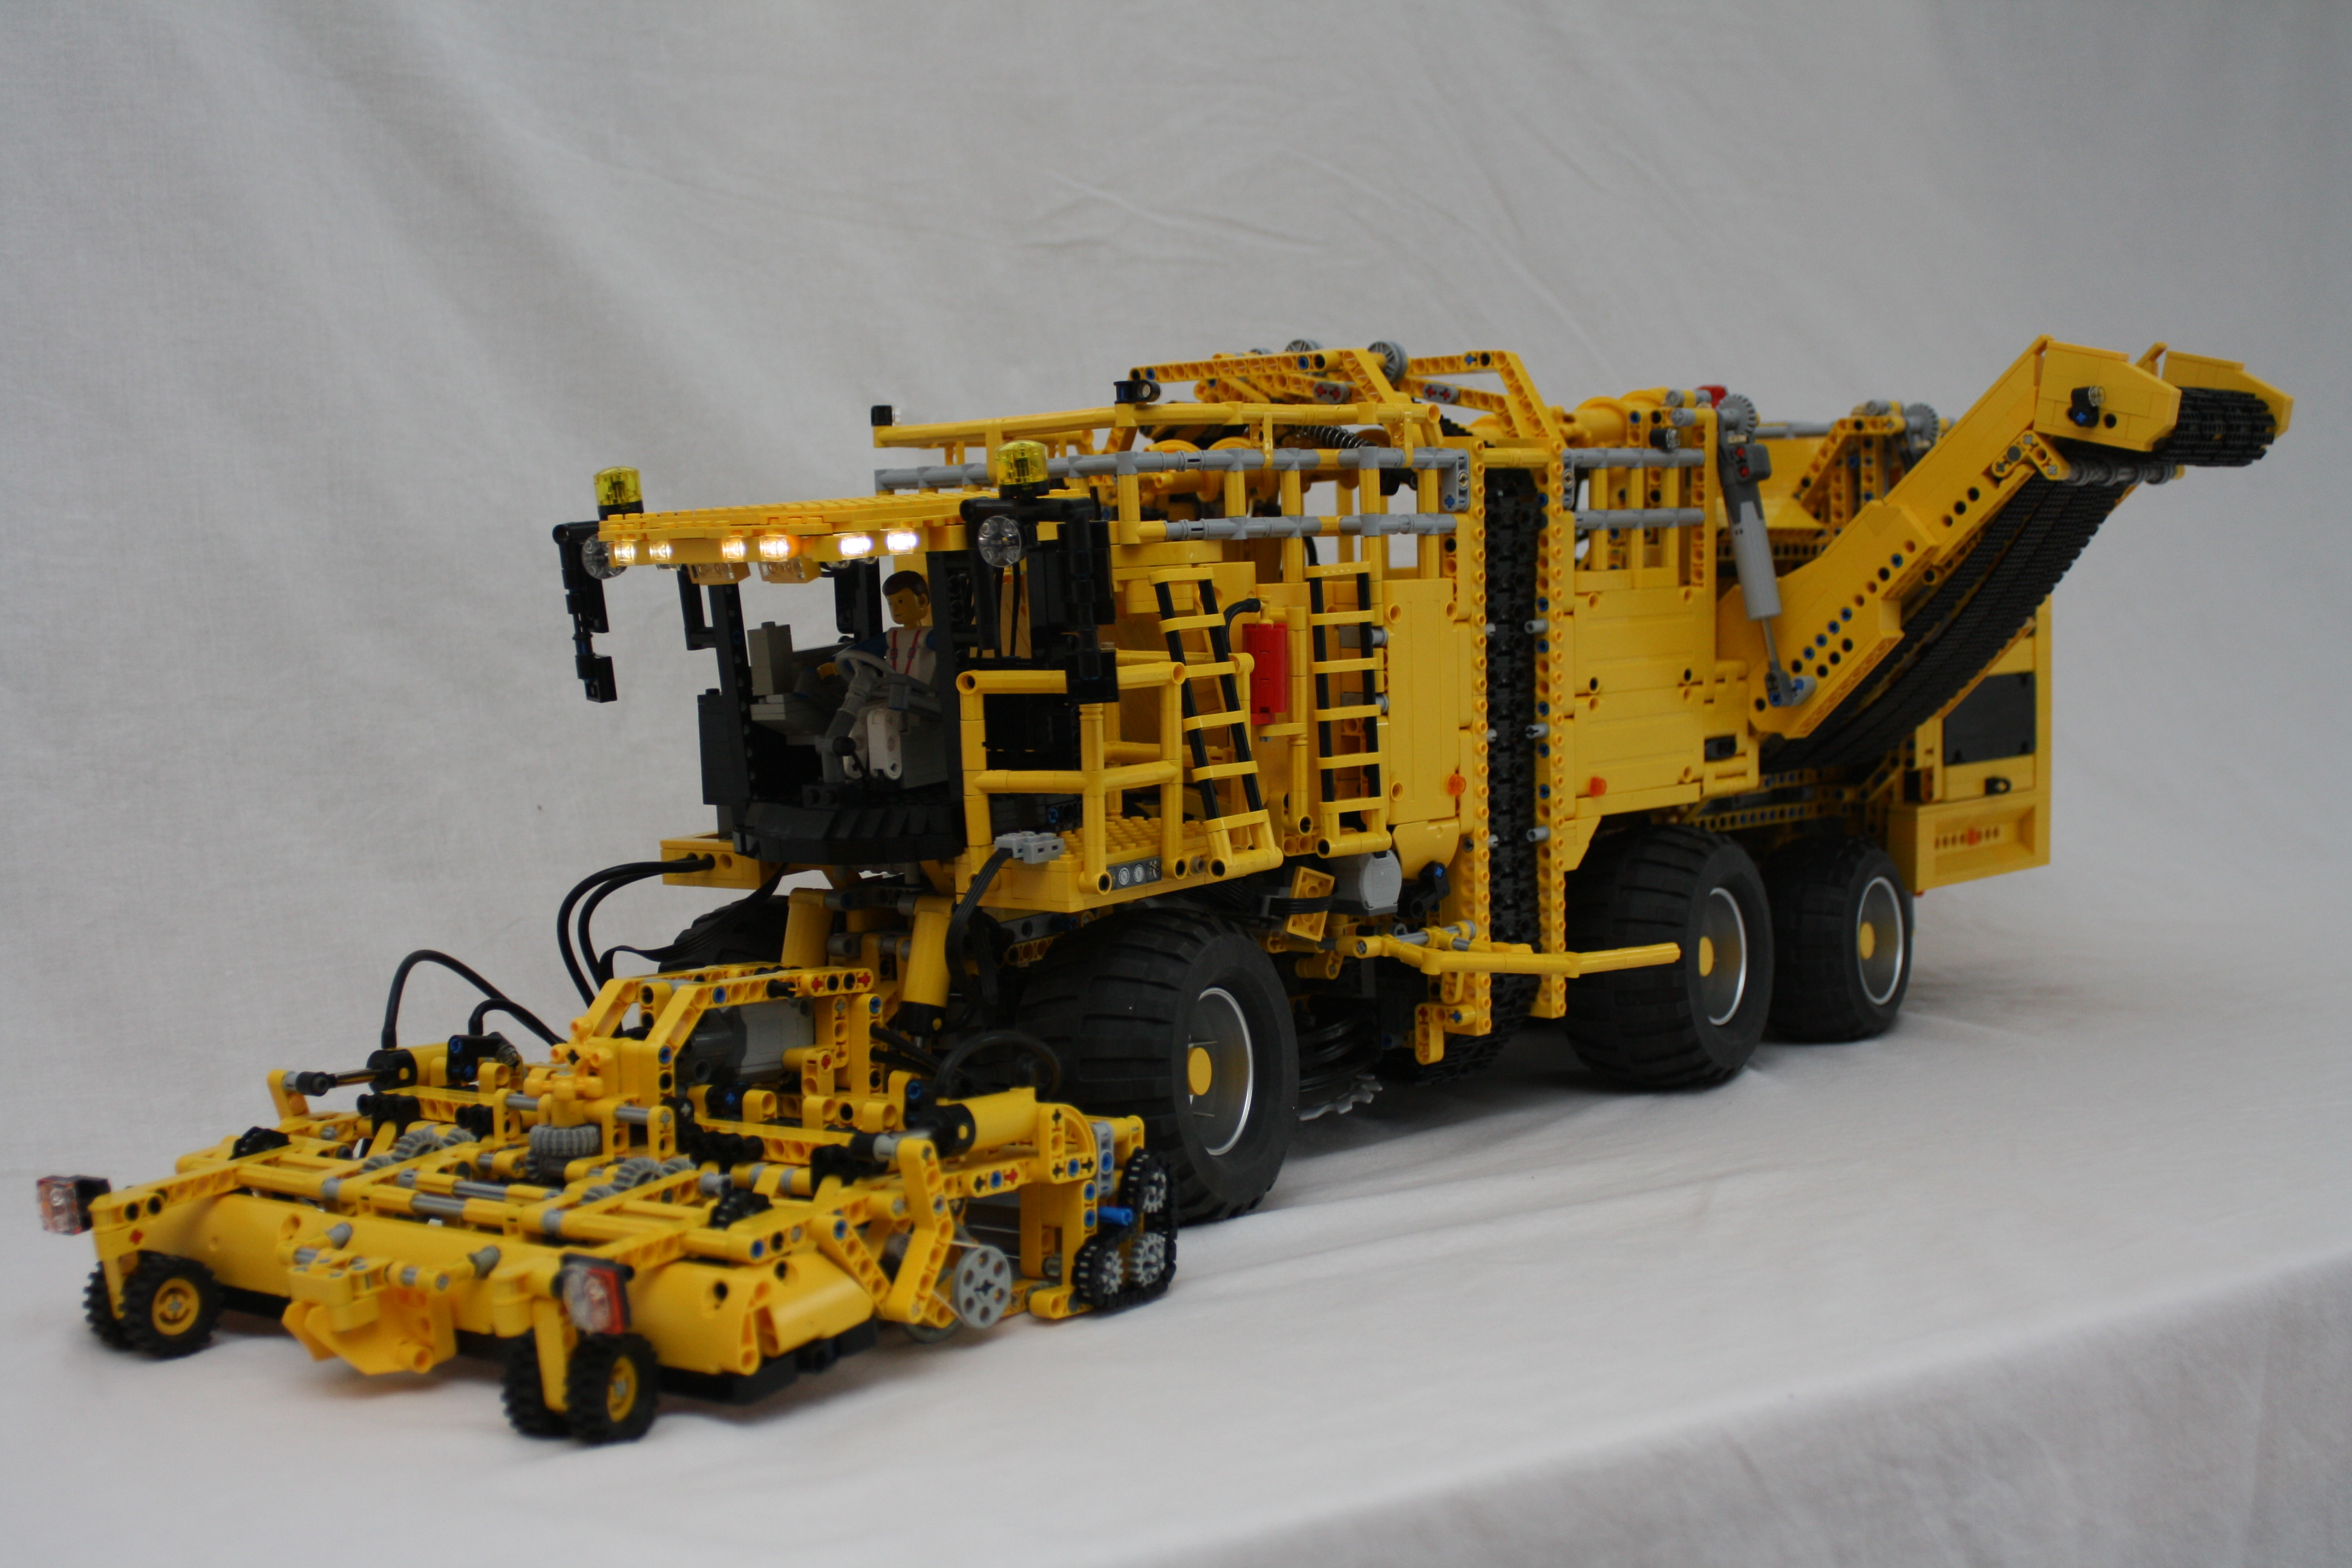 ... sugarbeet harvester, the Lego Technic Ropa euroTiger 8V-4 XL